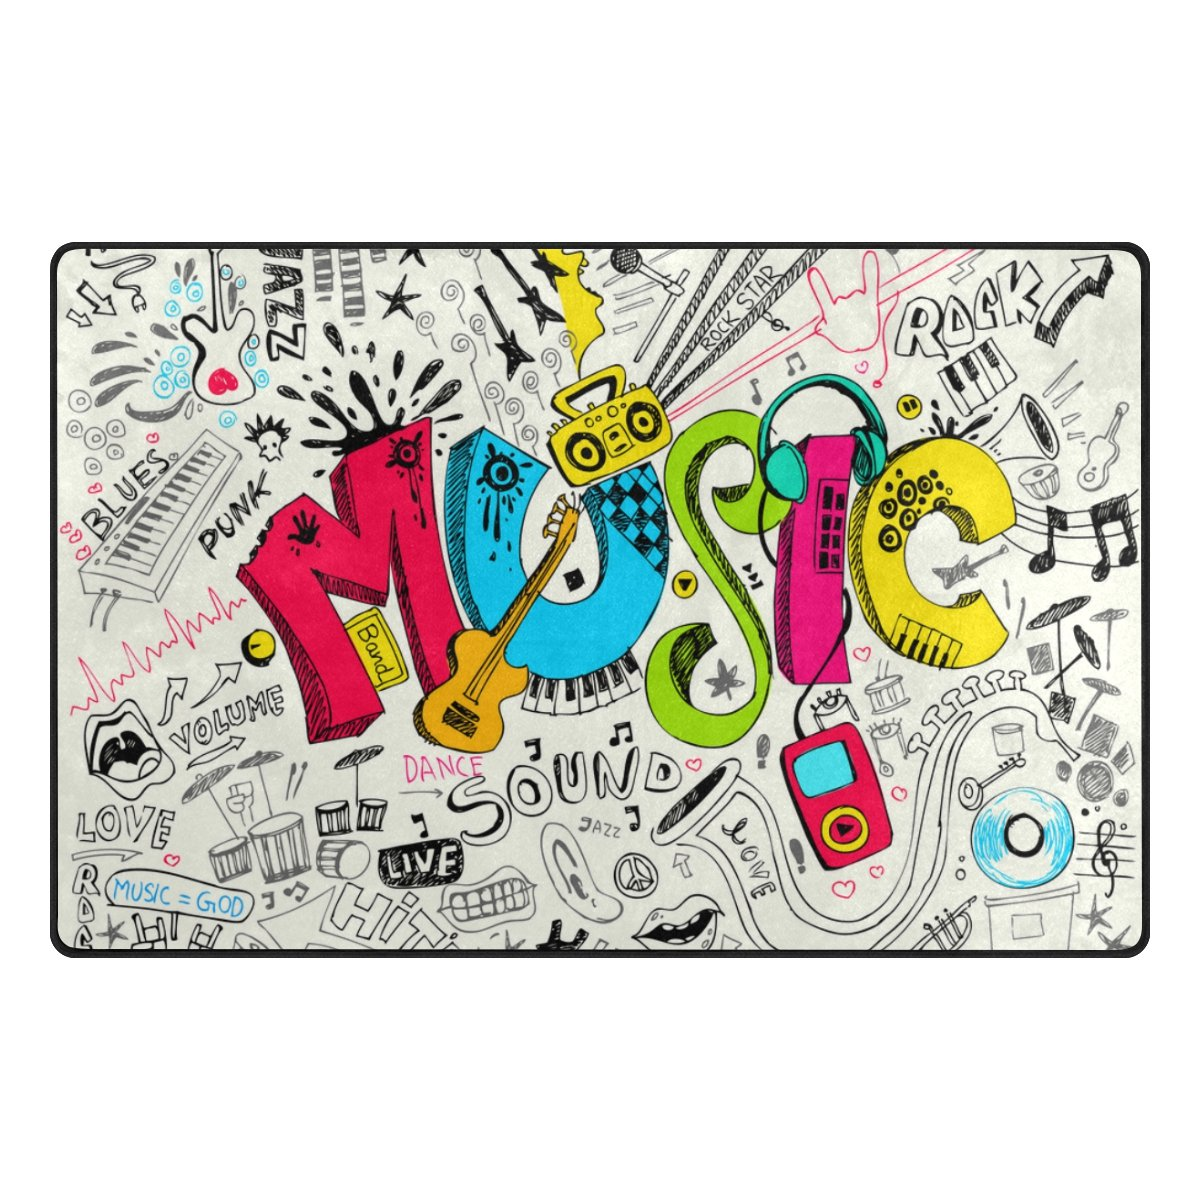 My Daily Funny Music Graffiti Doodle Area Rug 3'3'' x 5', Living Room Bedroom Kitchen Decorative Lightweight Foam Printed Rug